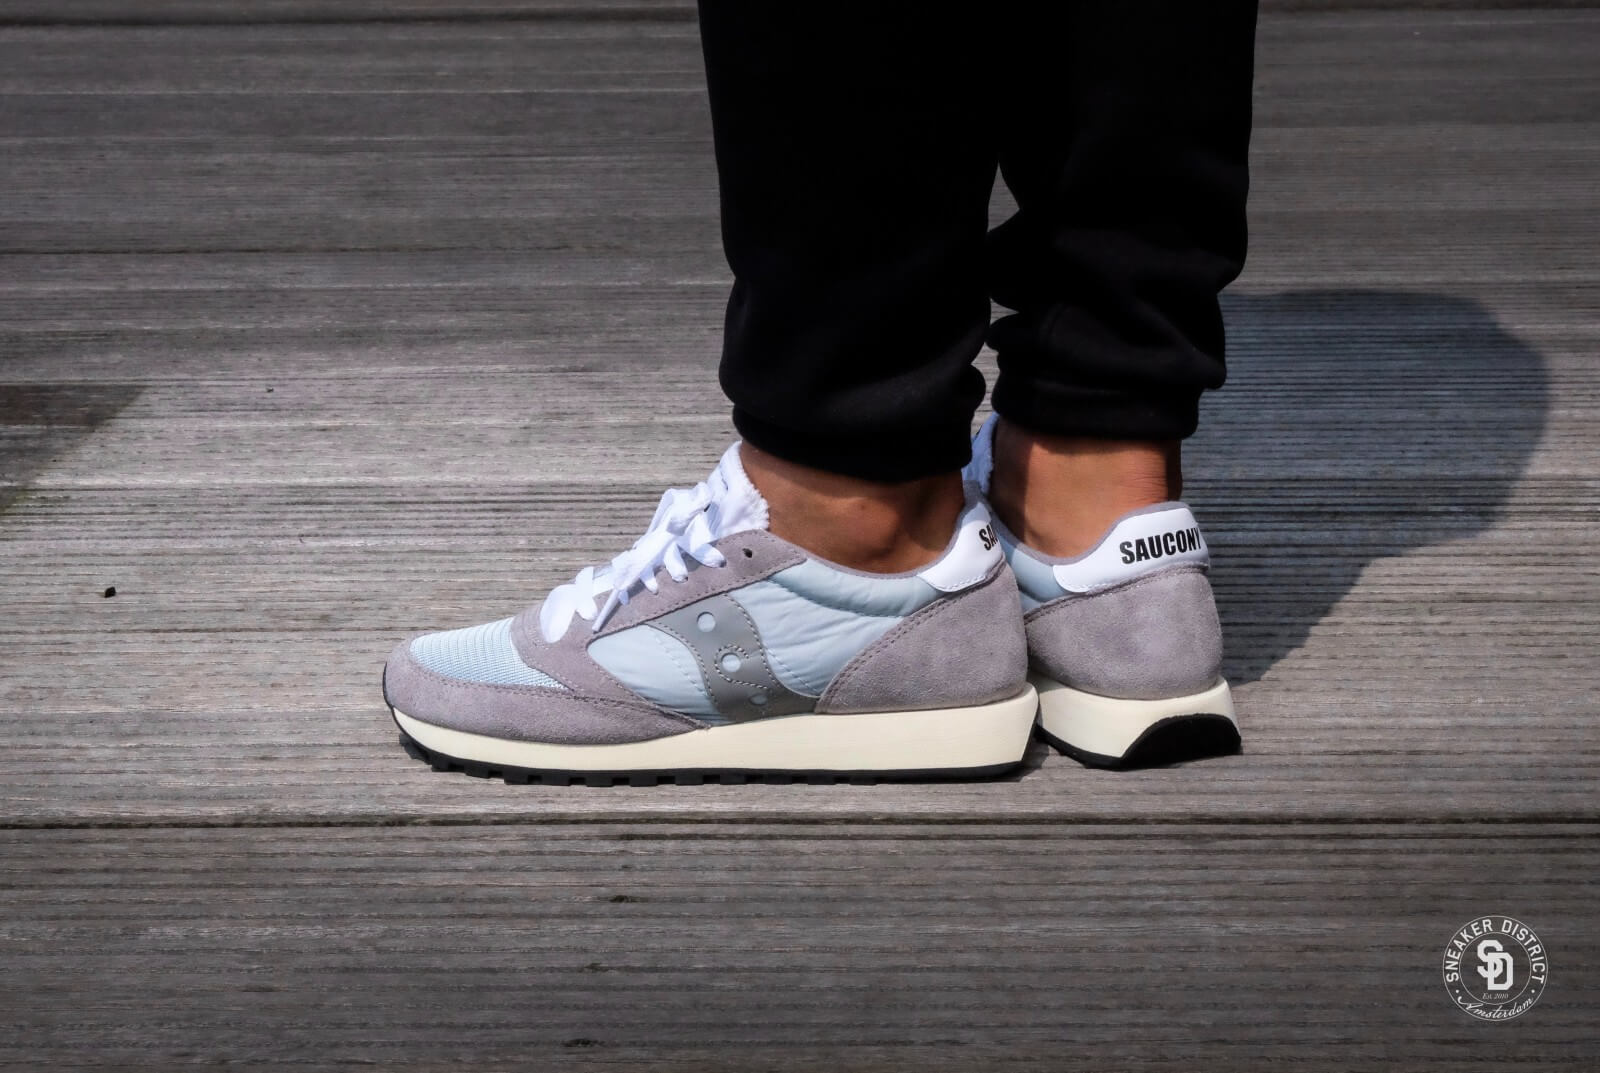 Saucony Jazz Original Vintage Grey White S70368 5